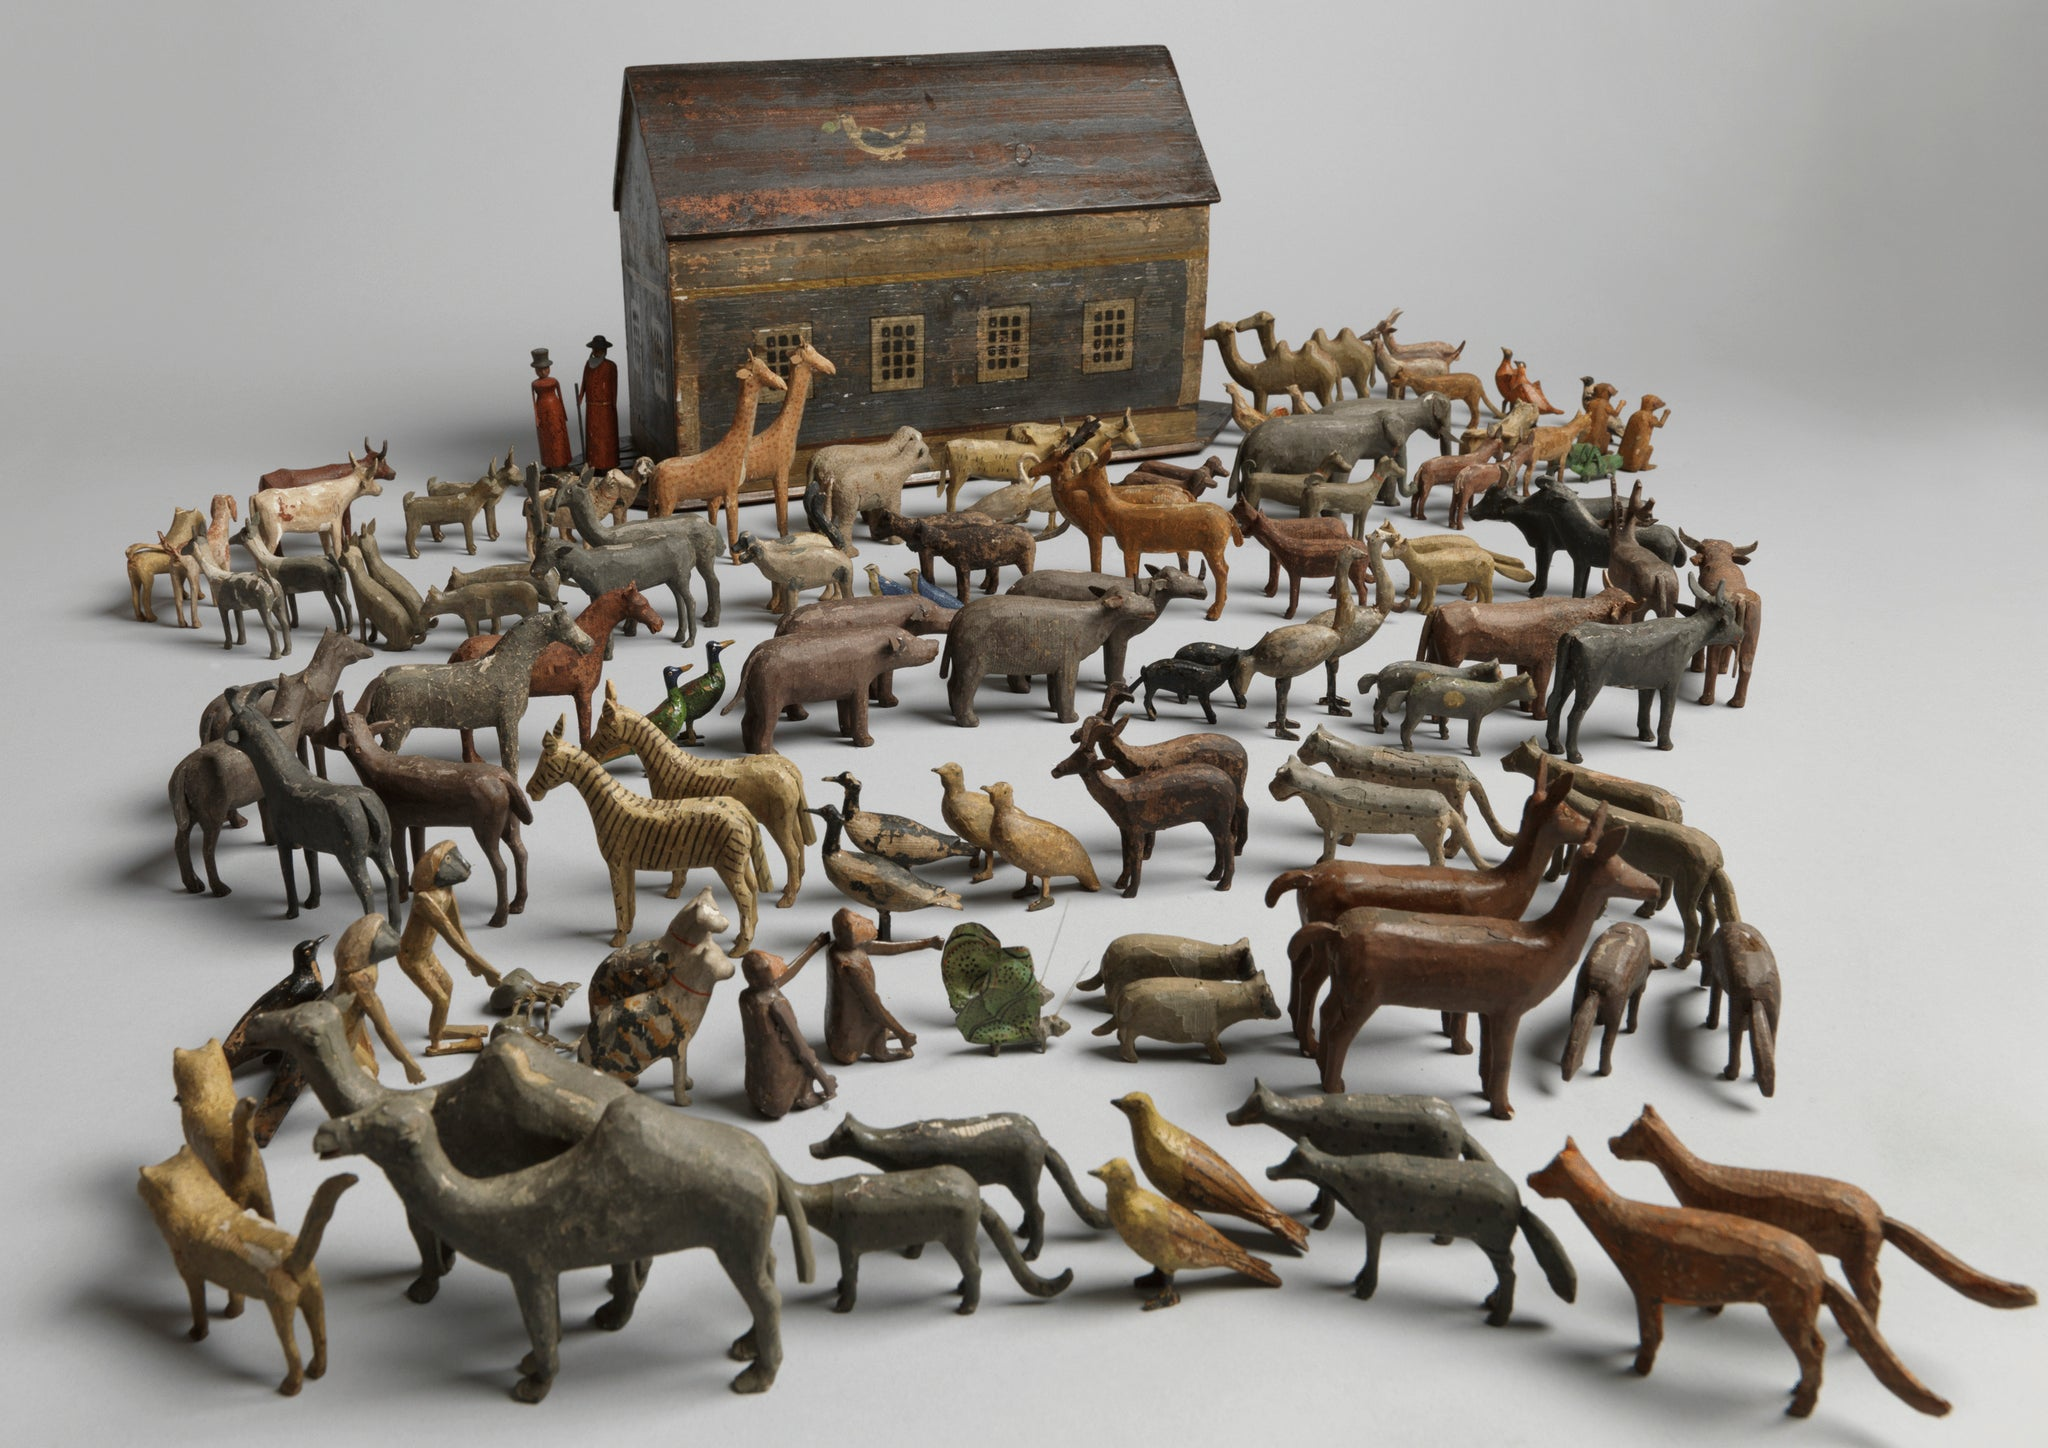 Original Toy Noah's Ark and Animals